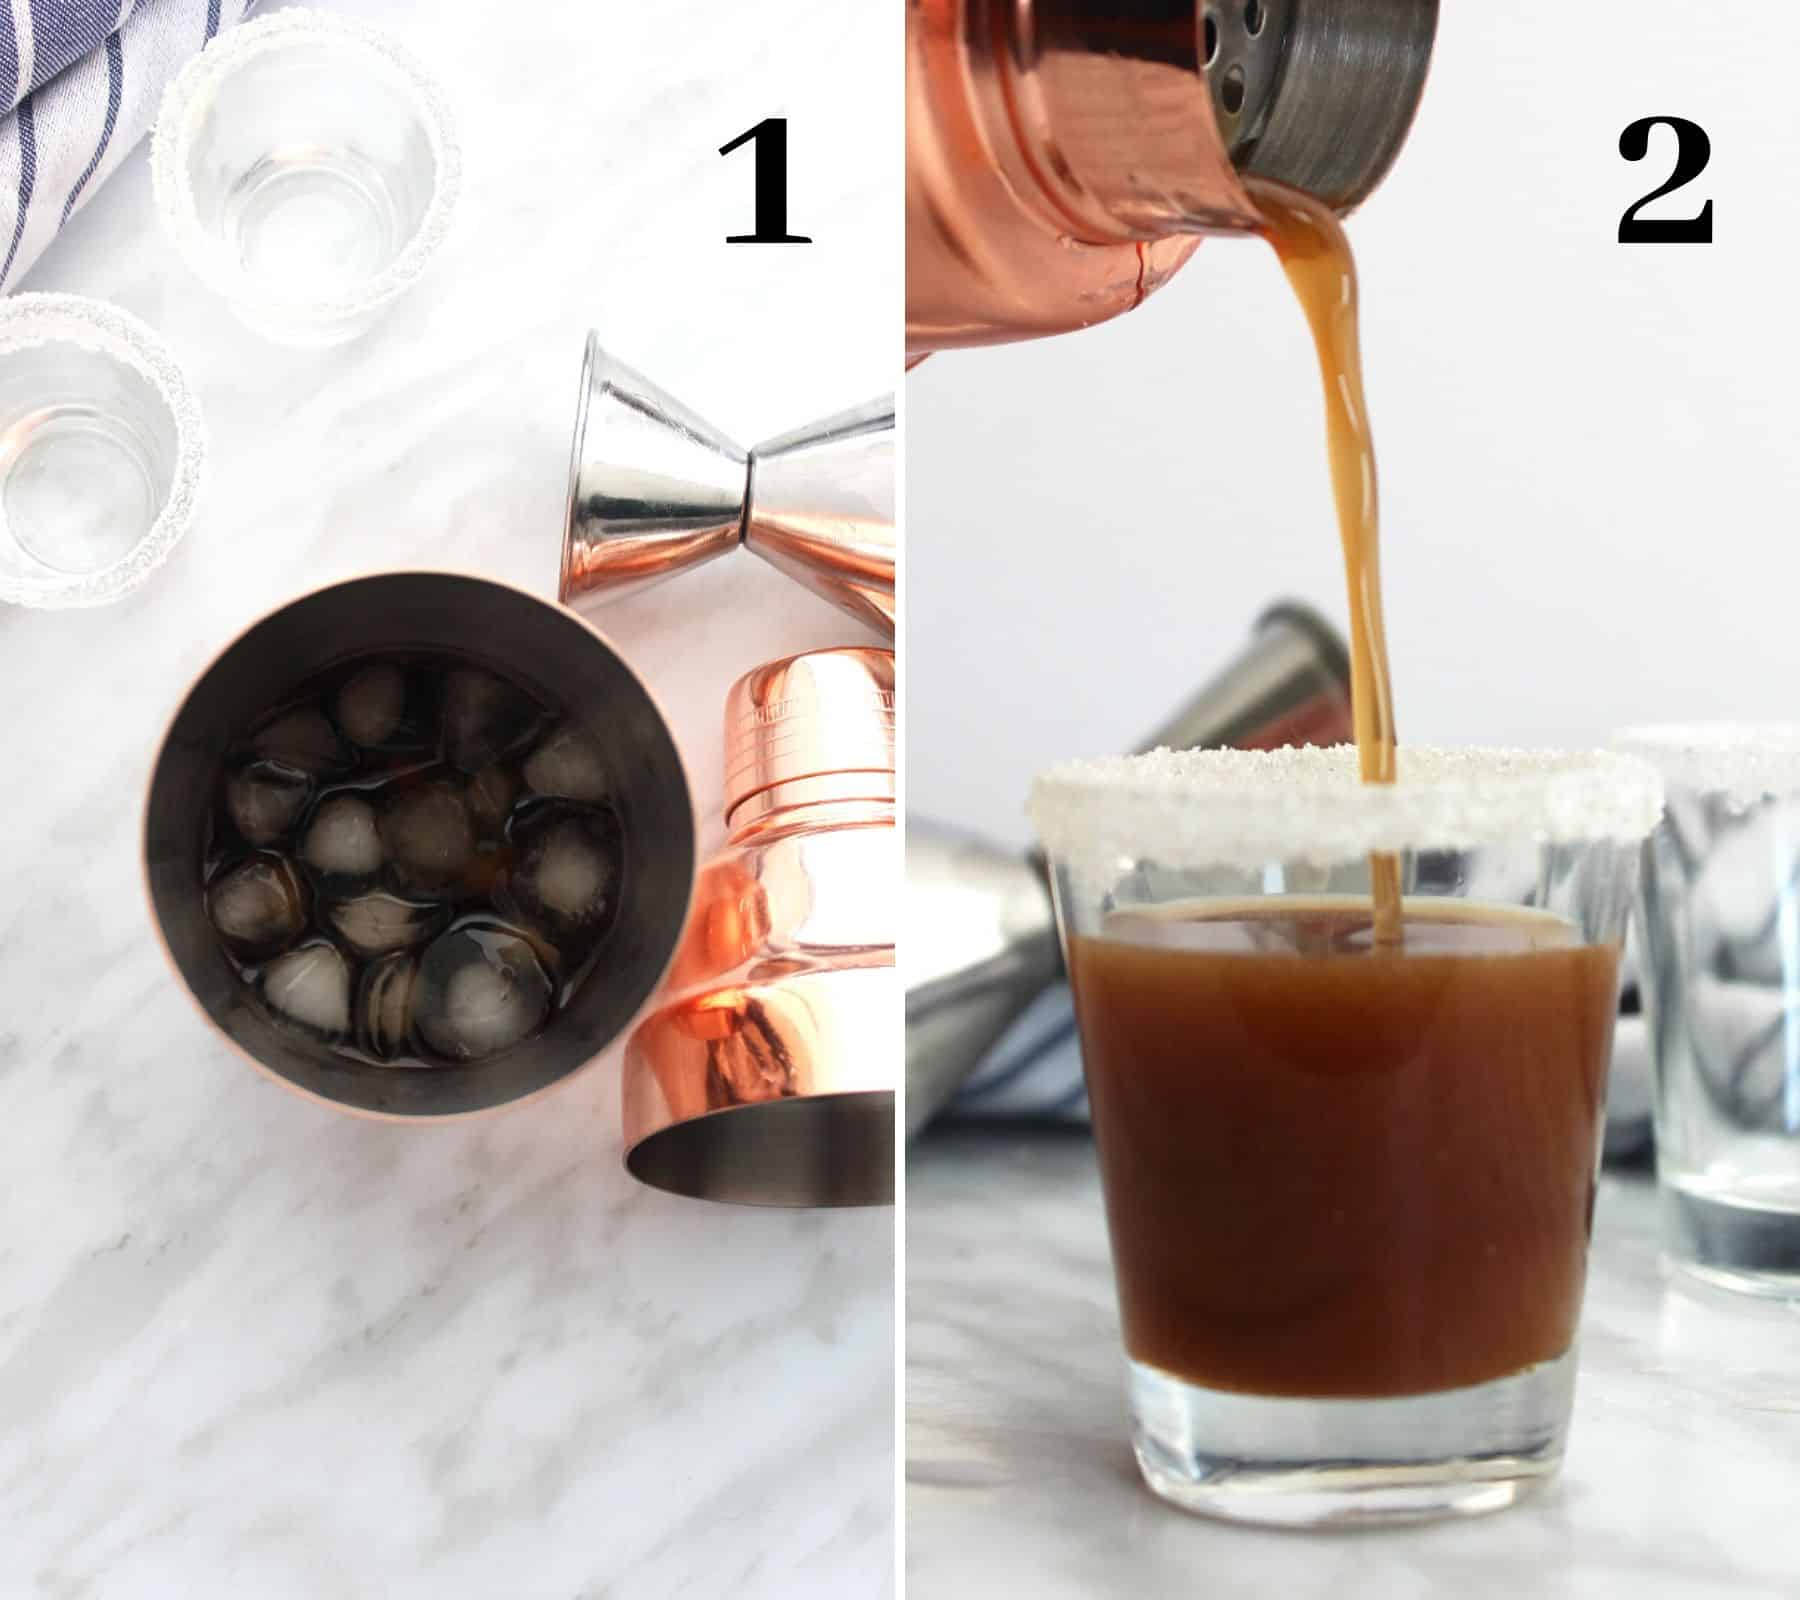 Two shots to show how to make the shooters